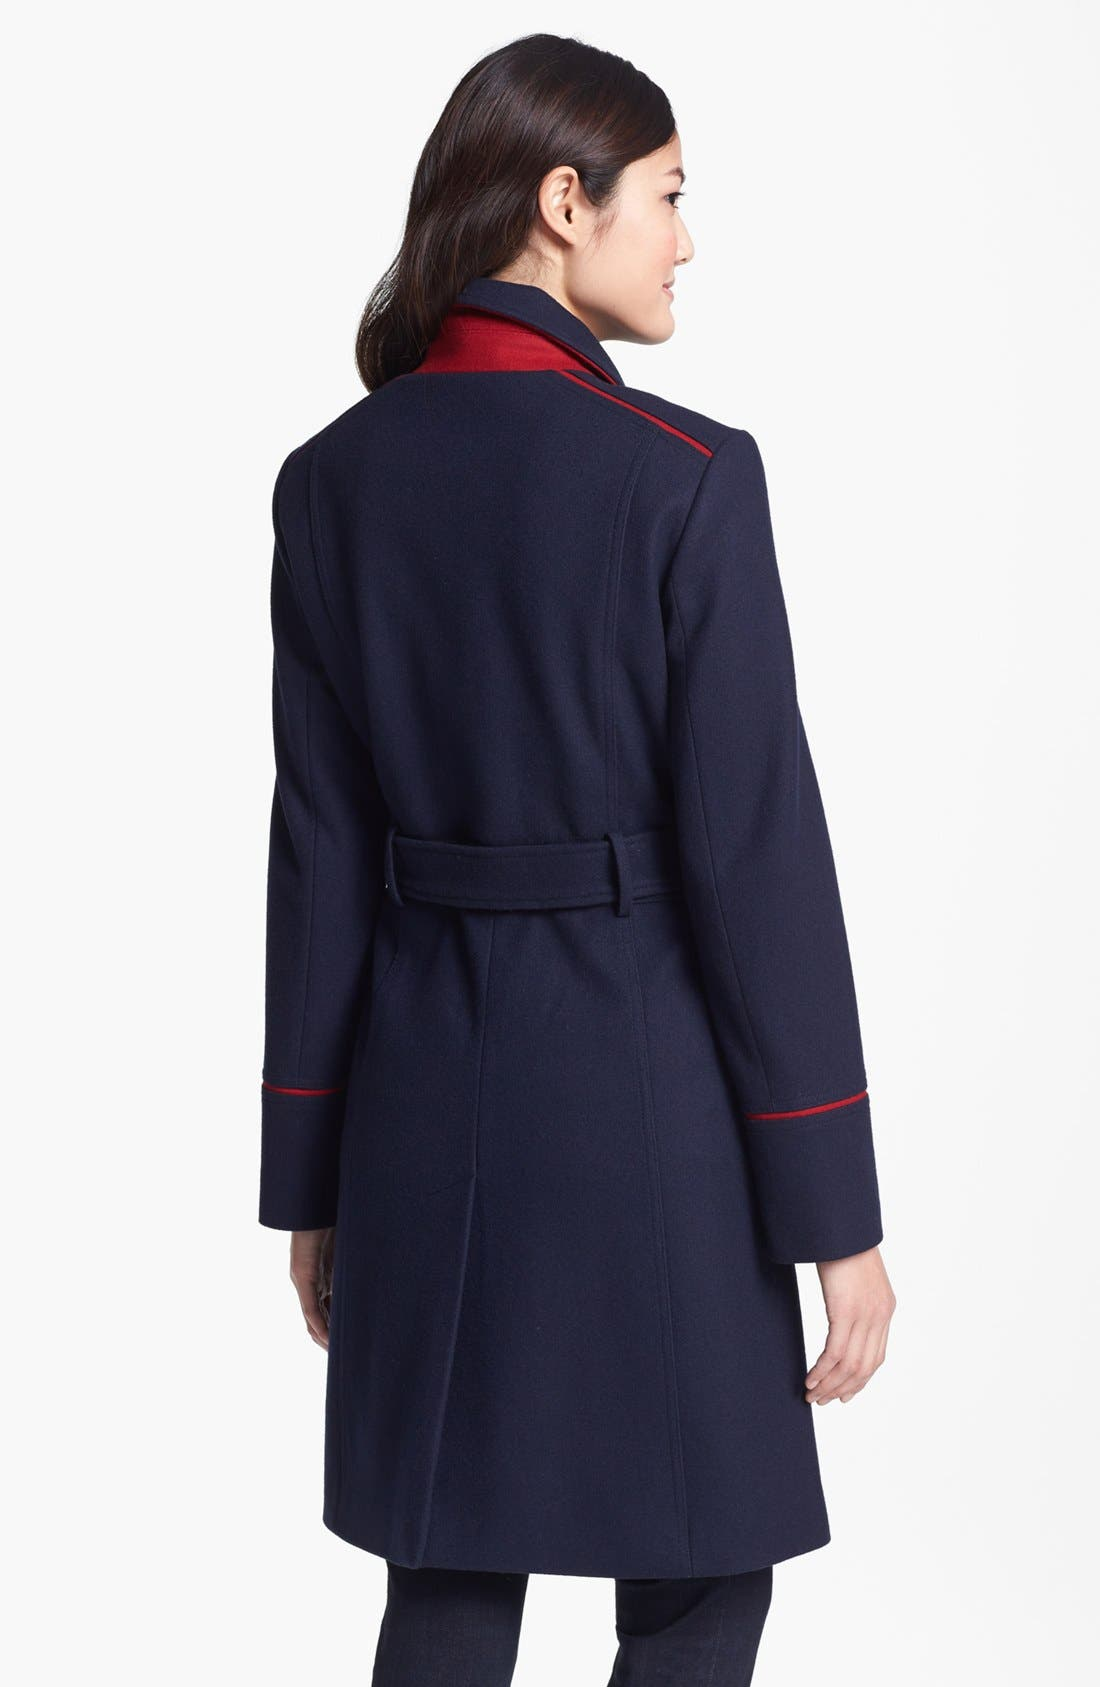 Alternate Image 3  - Vince Camuto Contrast Piping Belted Military Coat